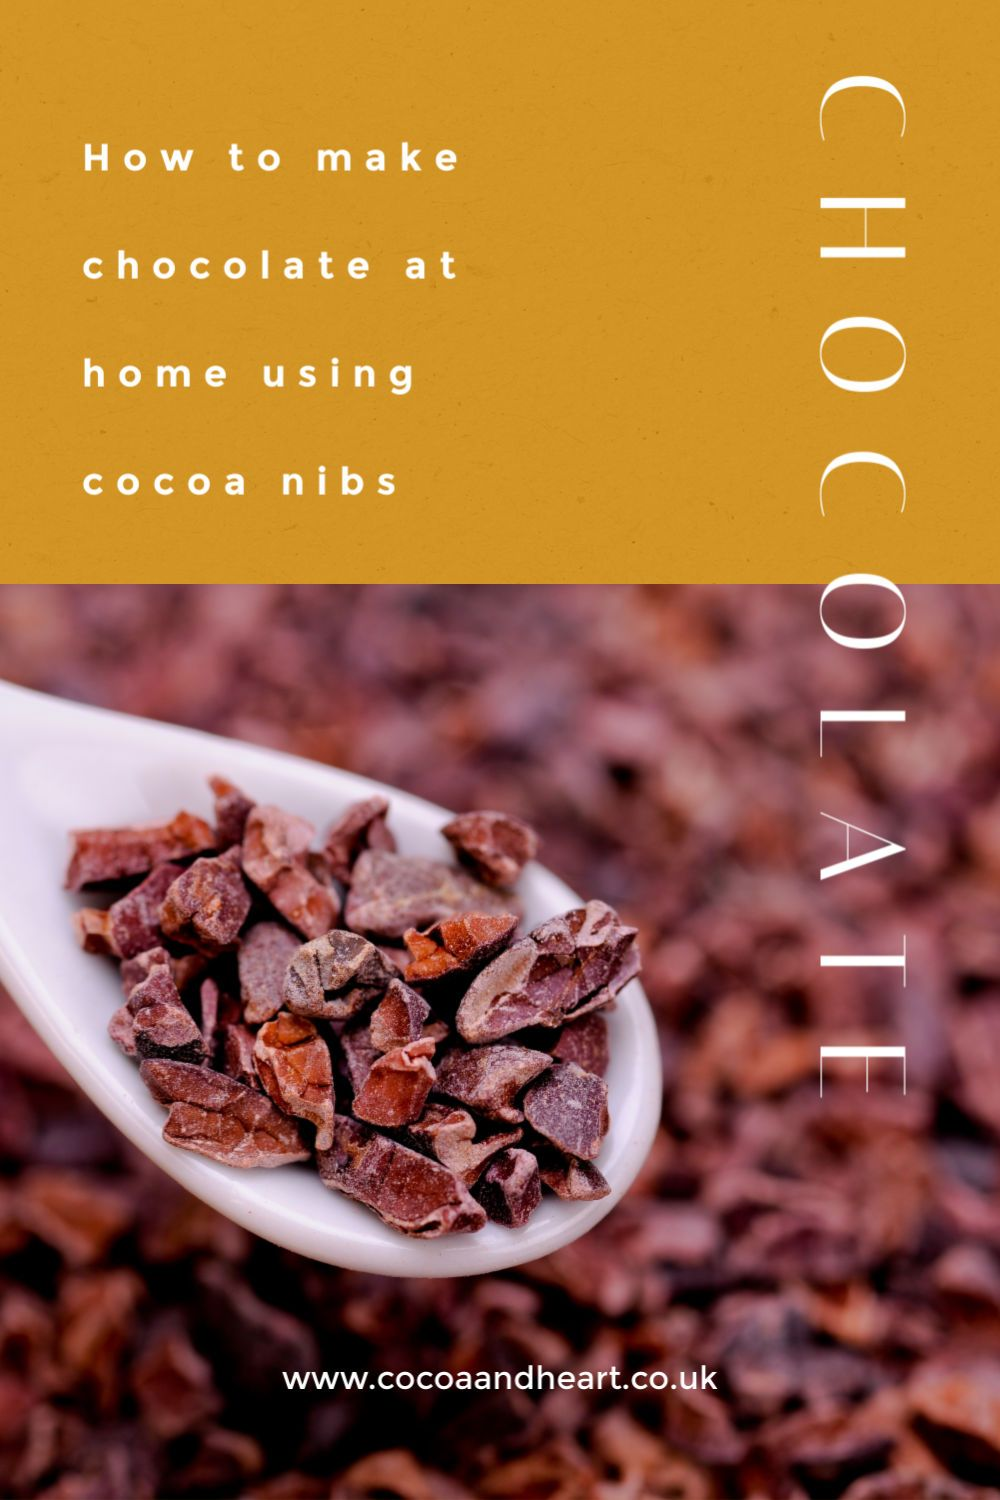 How to make chocolate at home using cocoa nibs (1)